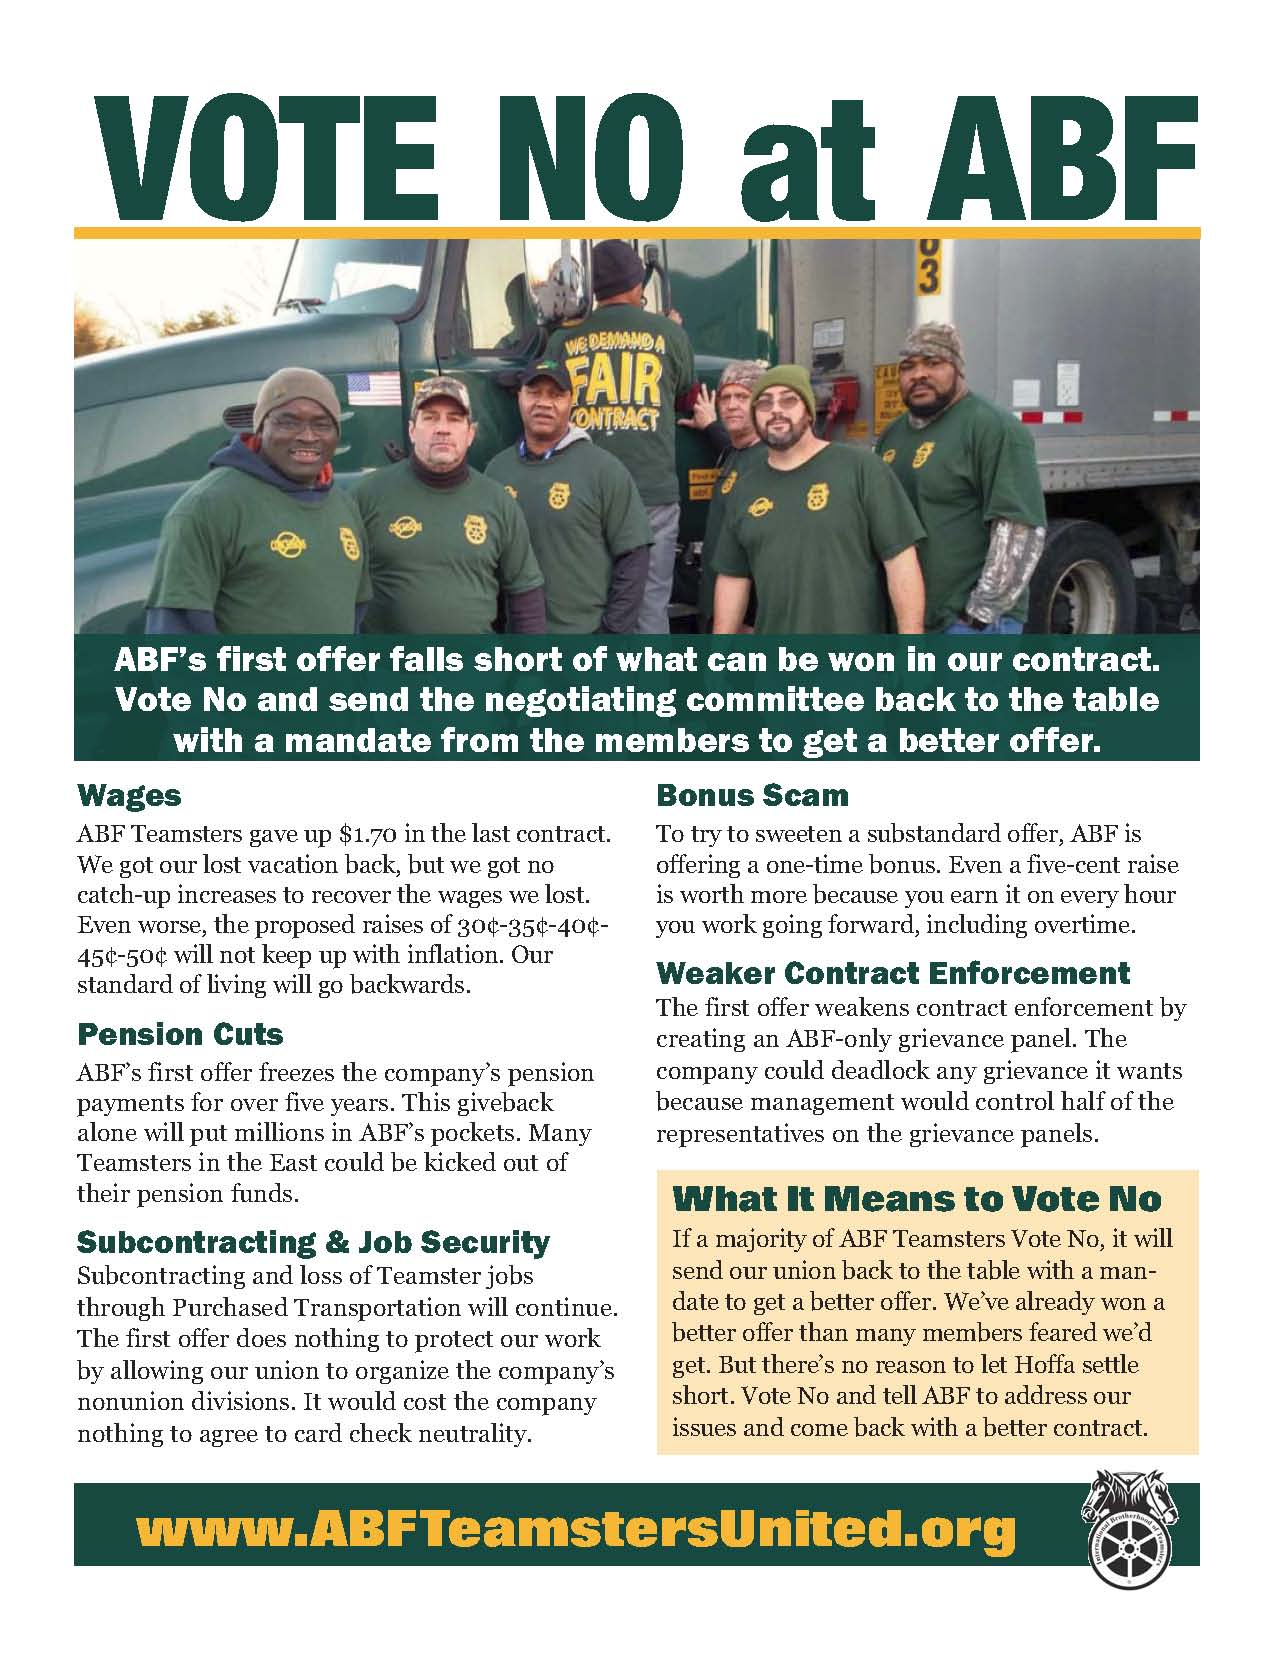 Vote-No-at-ABF-bulletin-4-16.jpg